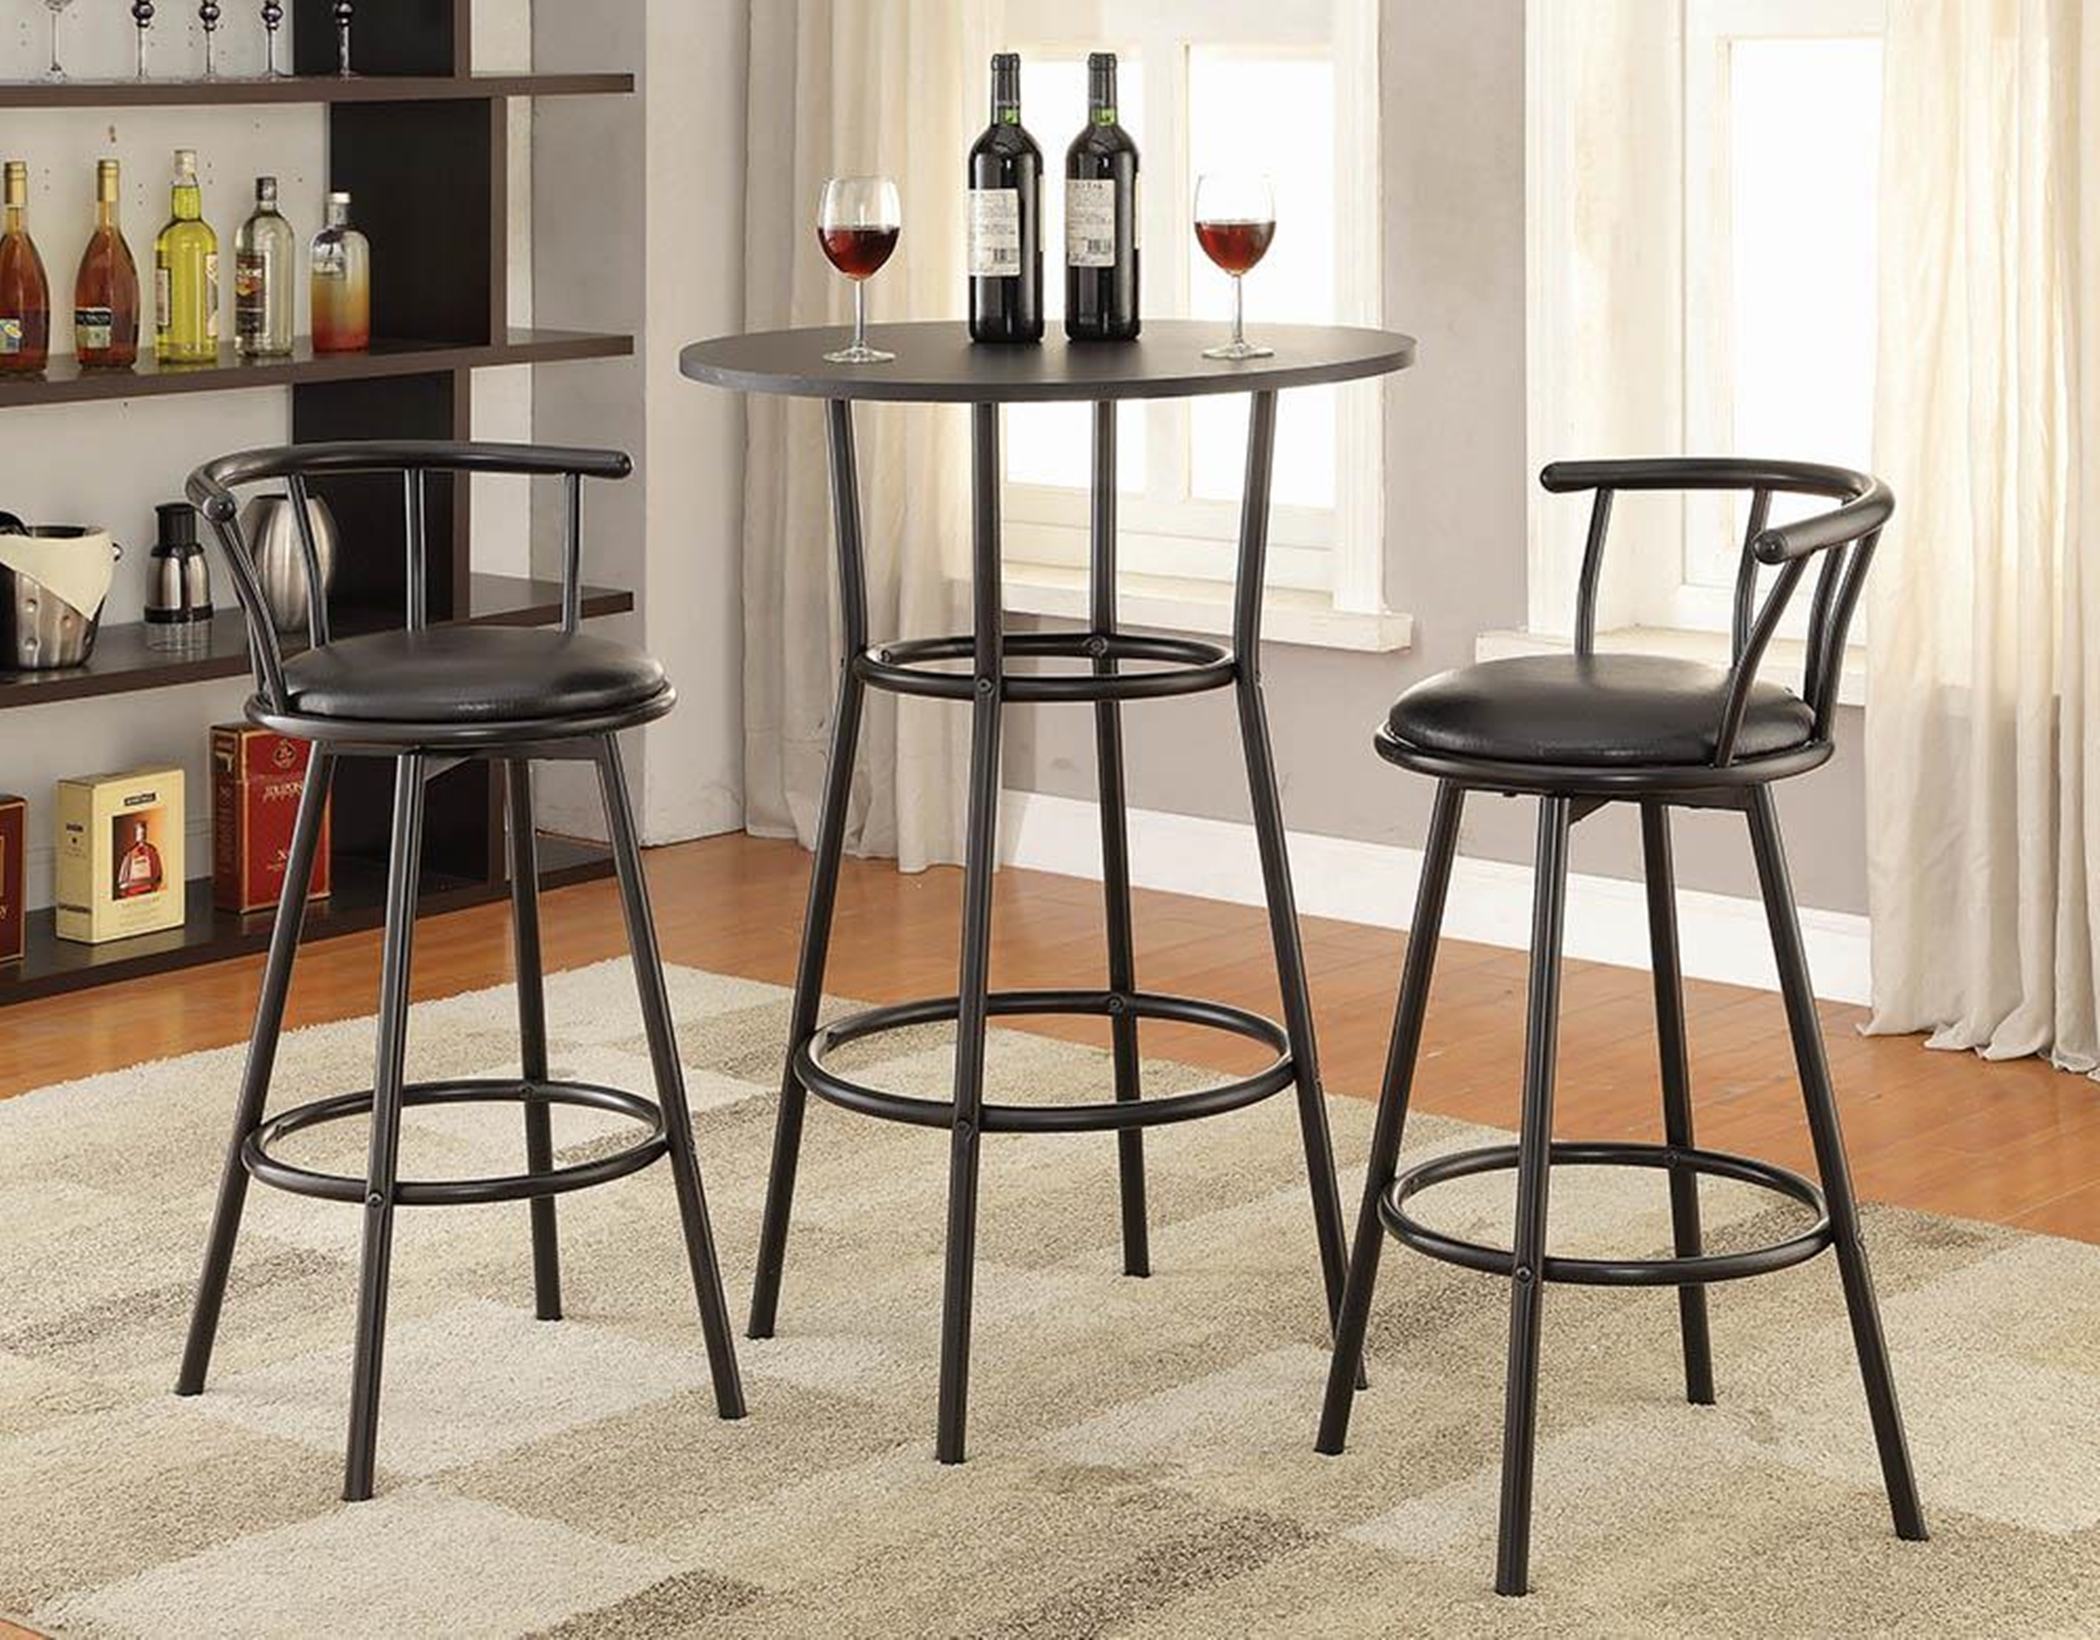 2383 - Contemporary Black Bar-Height Table